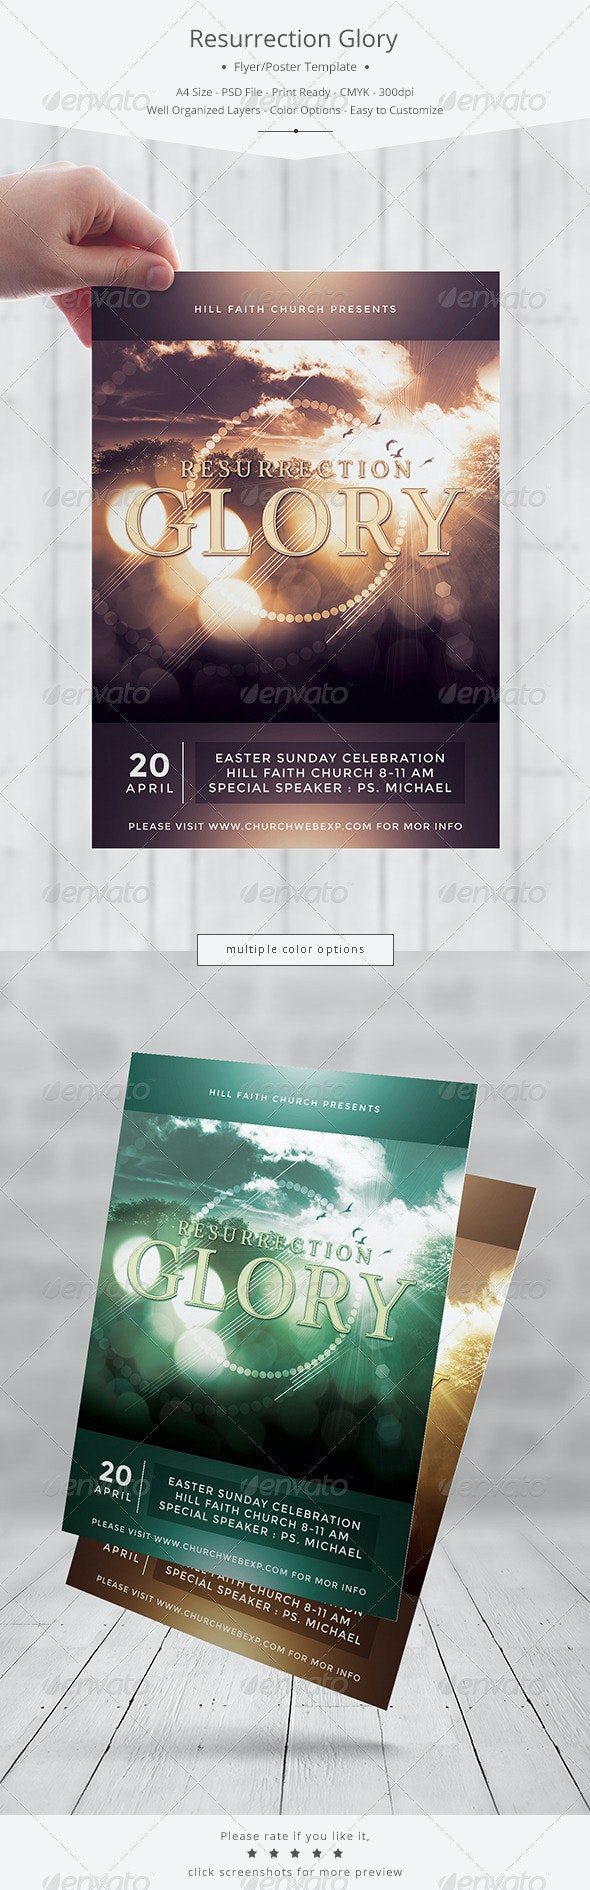 Resurrection Glory Flyer/Poster Template - Church Flyers